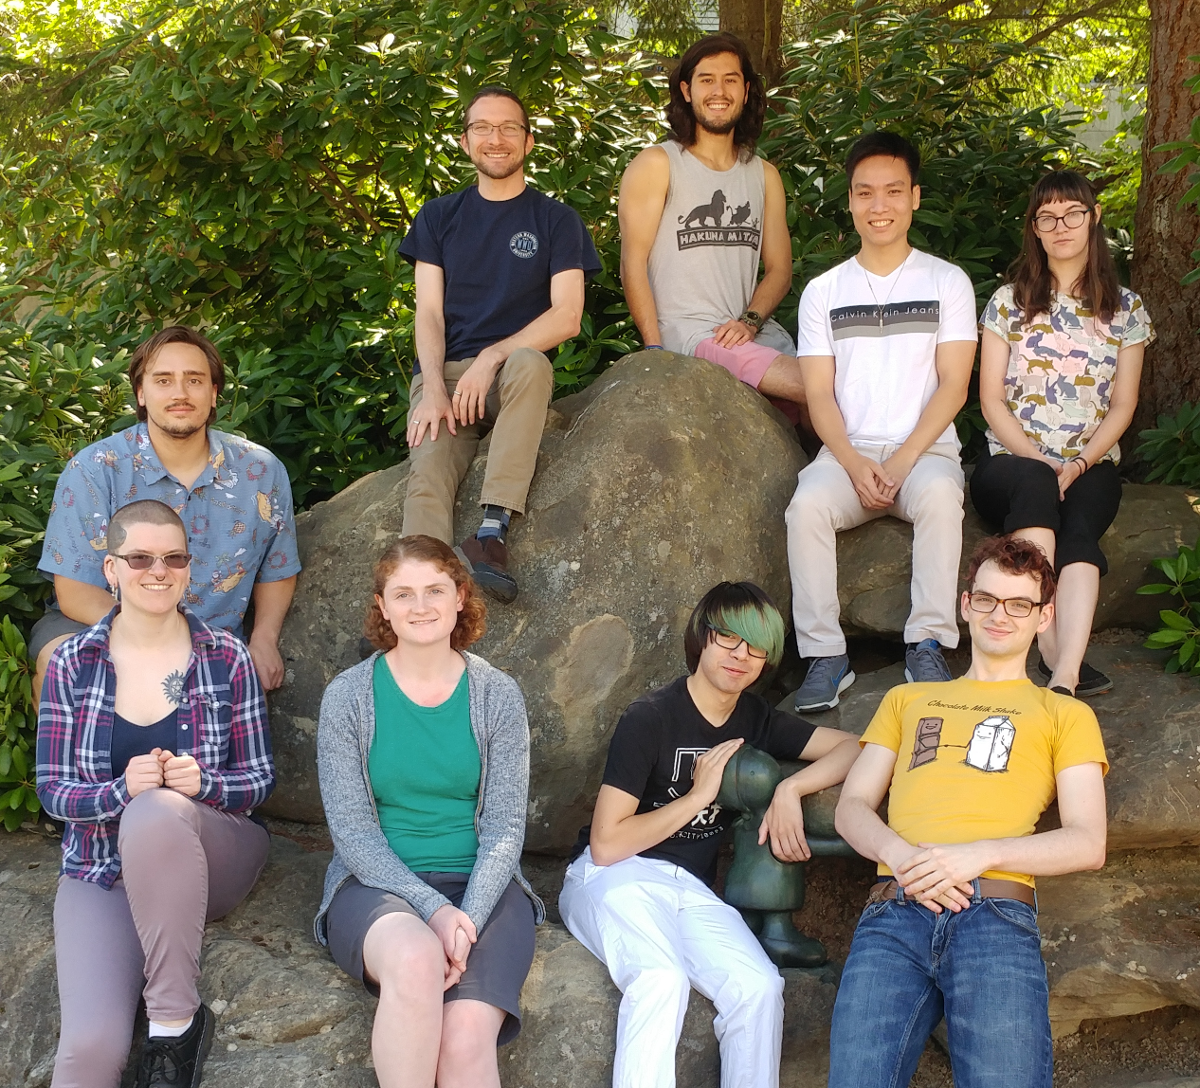 a group of students pose on and around a boulder Summer 2017